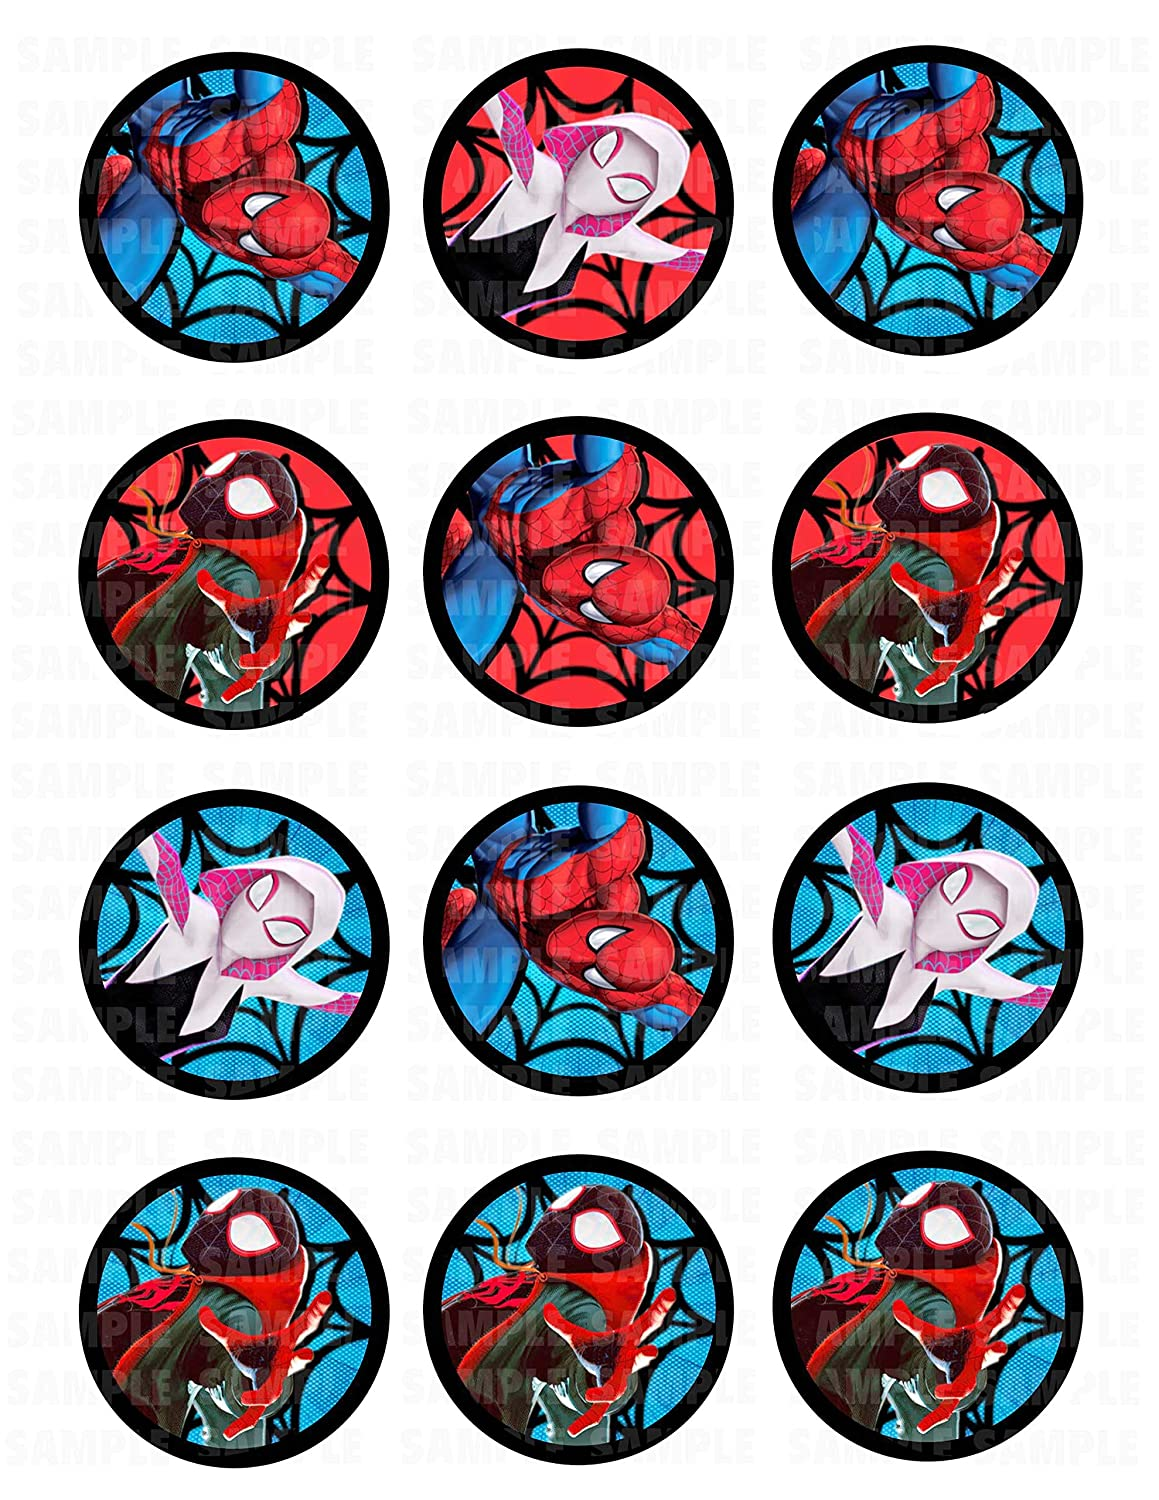 graphic about Free Printable Cupcake Wrappers and Toppers With Spiderman called Spider-Person Into the Spider-Verse Edible Cupcake Toppers (12